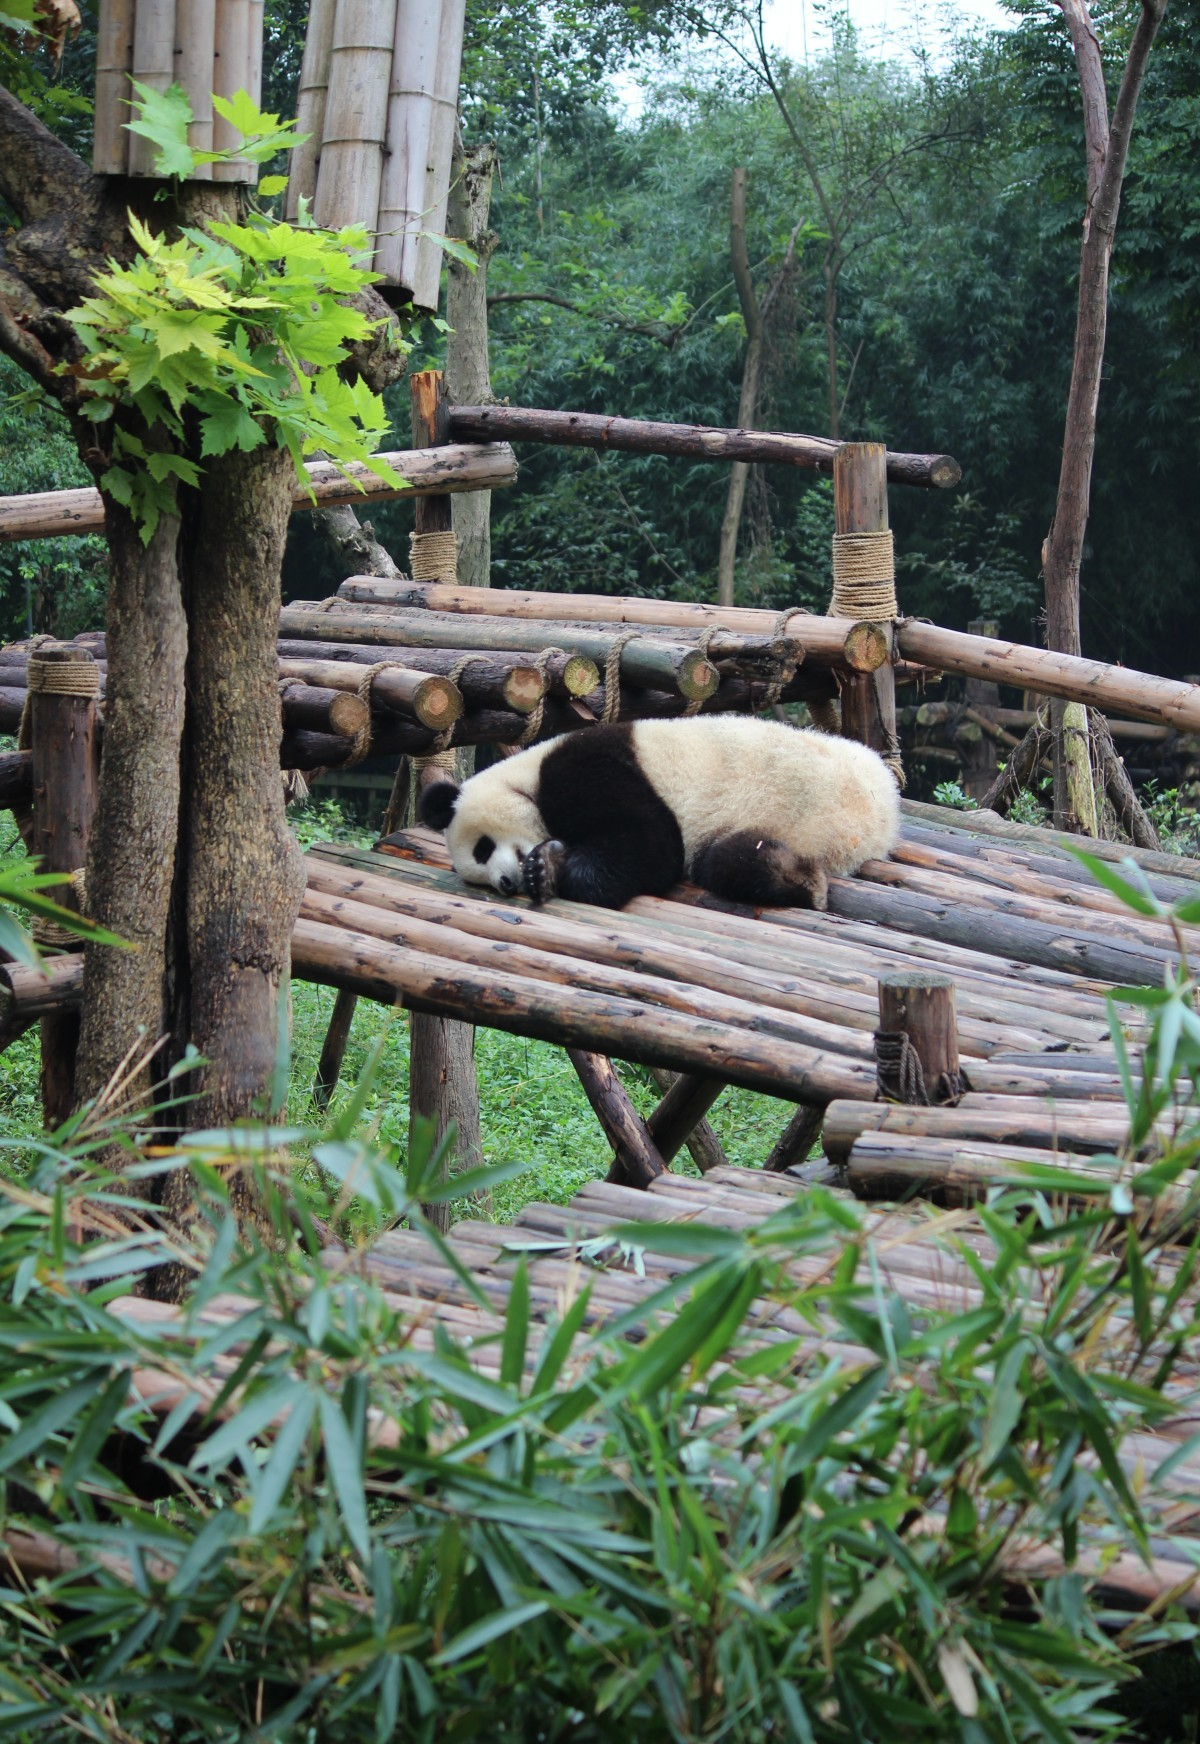 Chengdu - Research Base of Giant Panda Breeding II